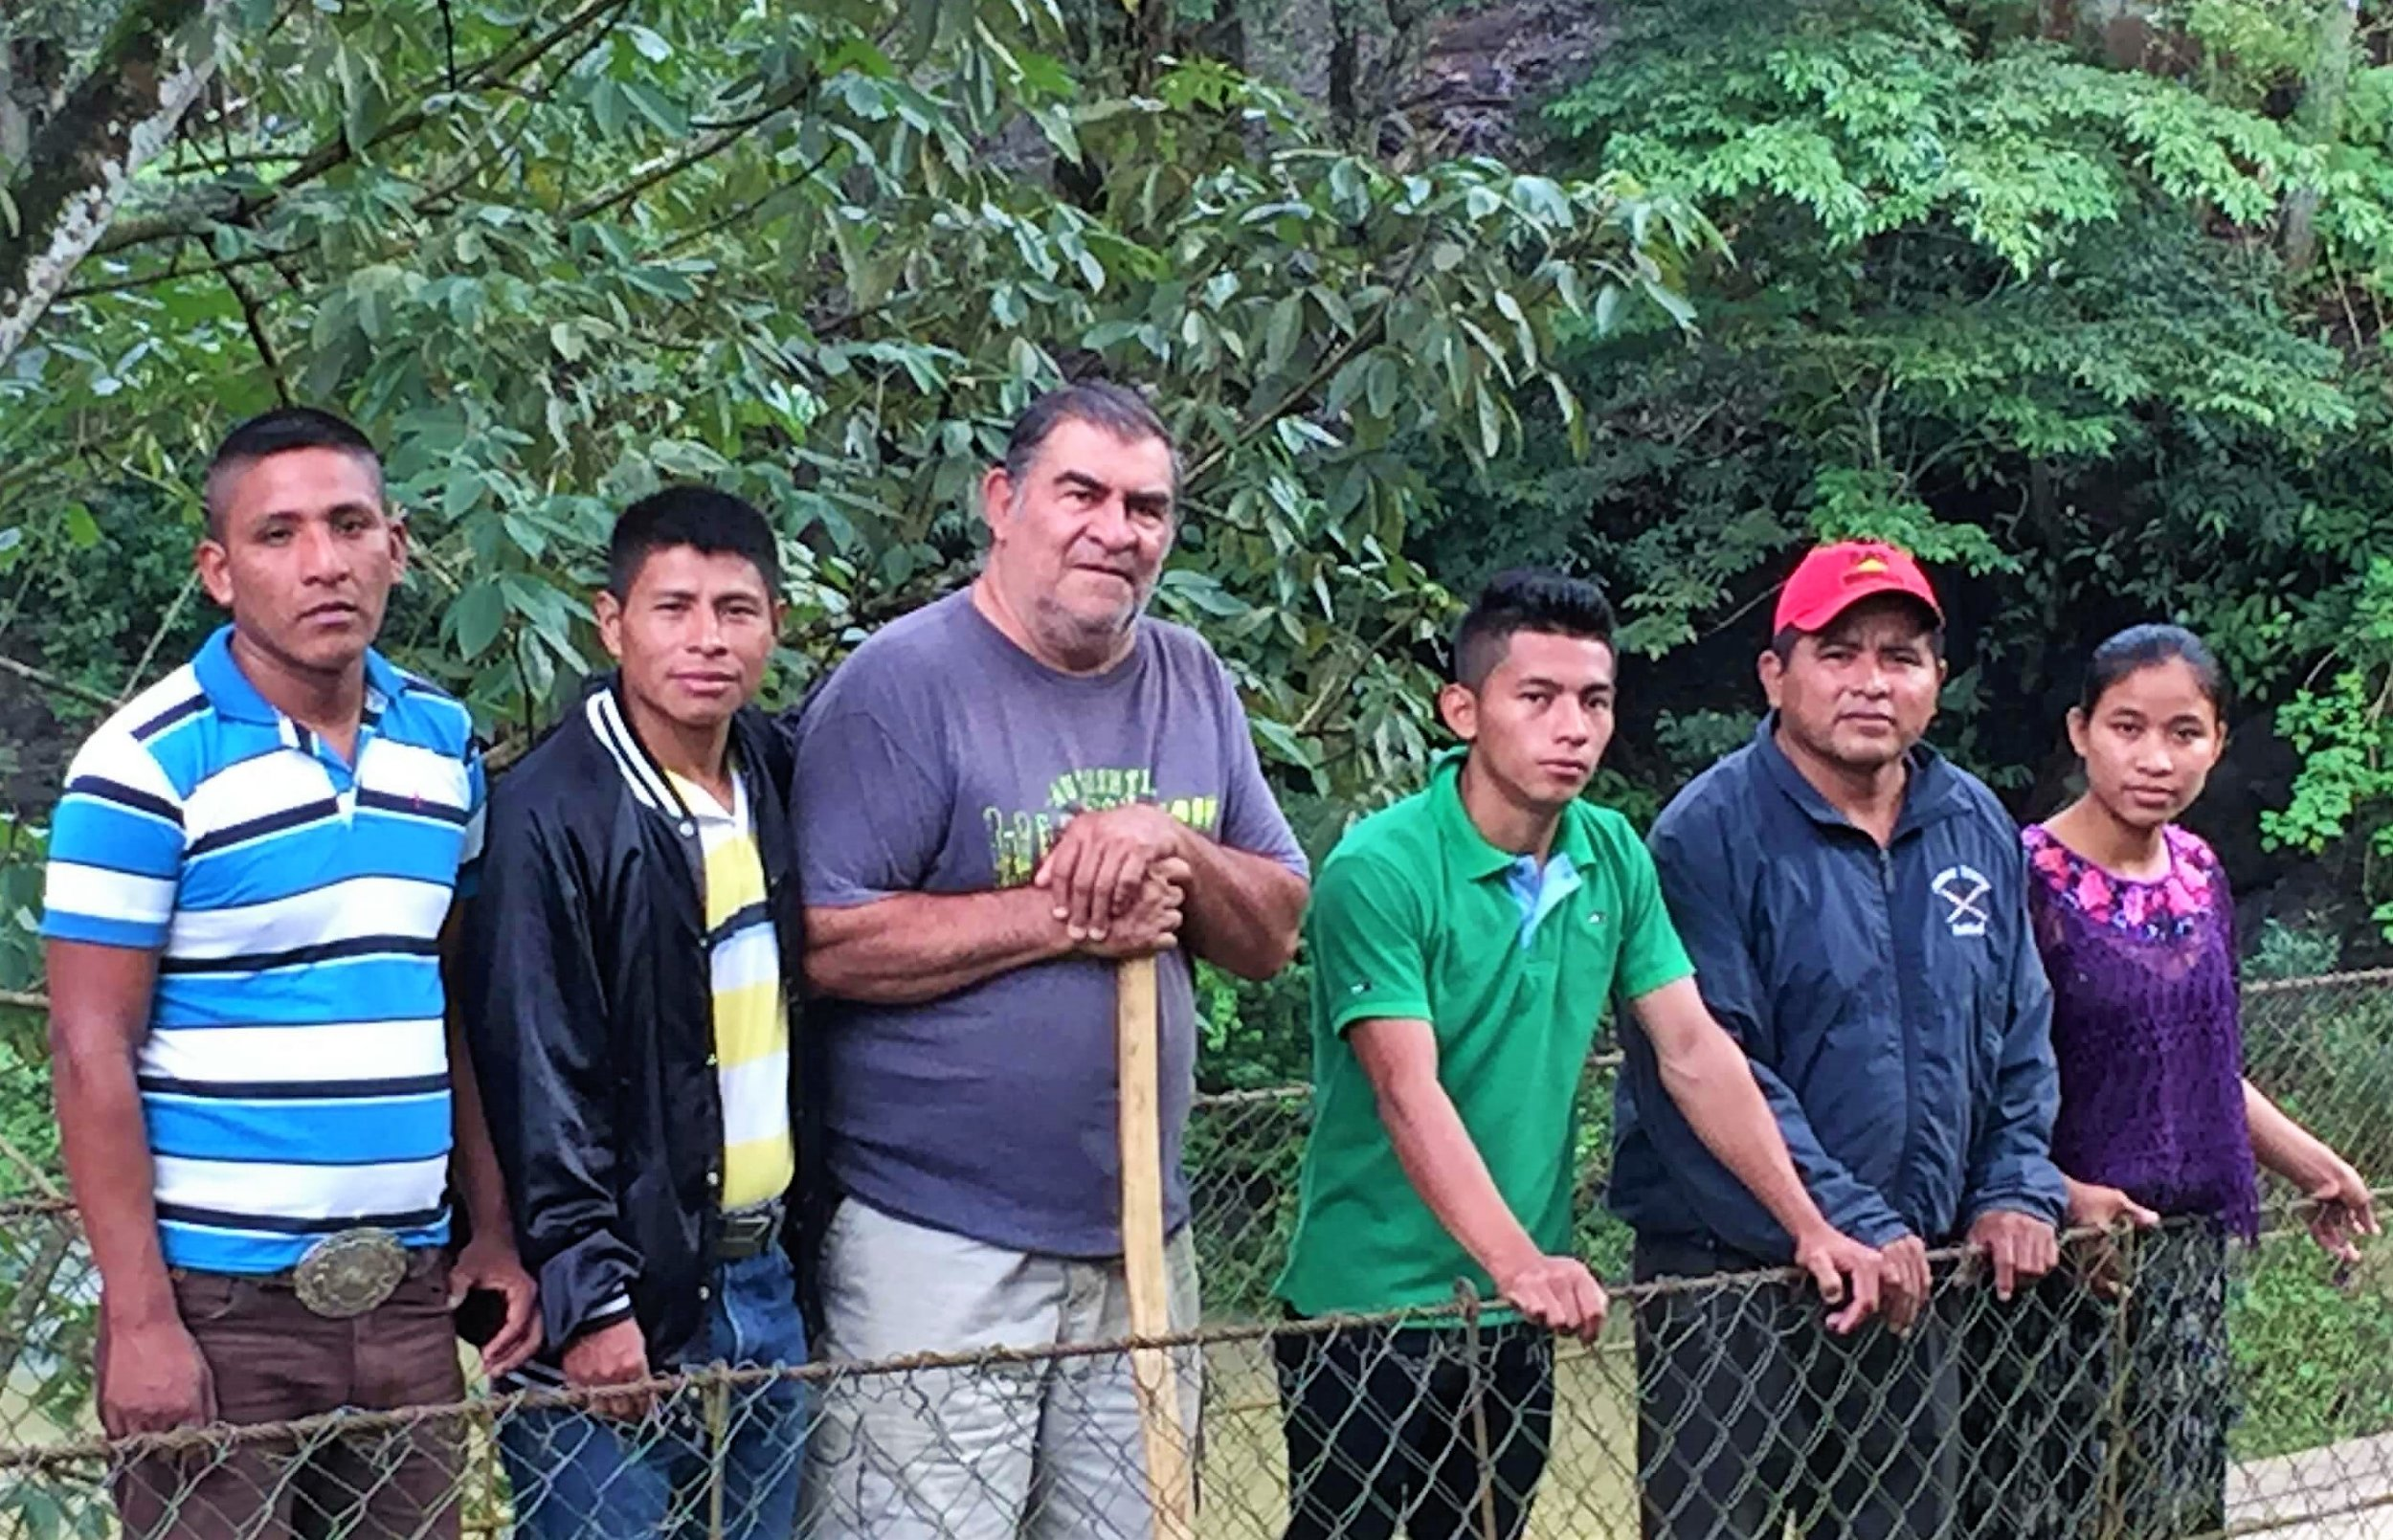 Kekchi group traveling with us:Left to right is Aníbal, Lorenzo, Cesar, Jose, and Jose's daughter Maria.